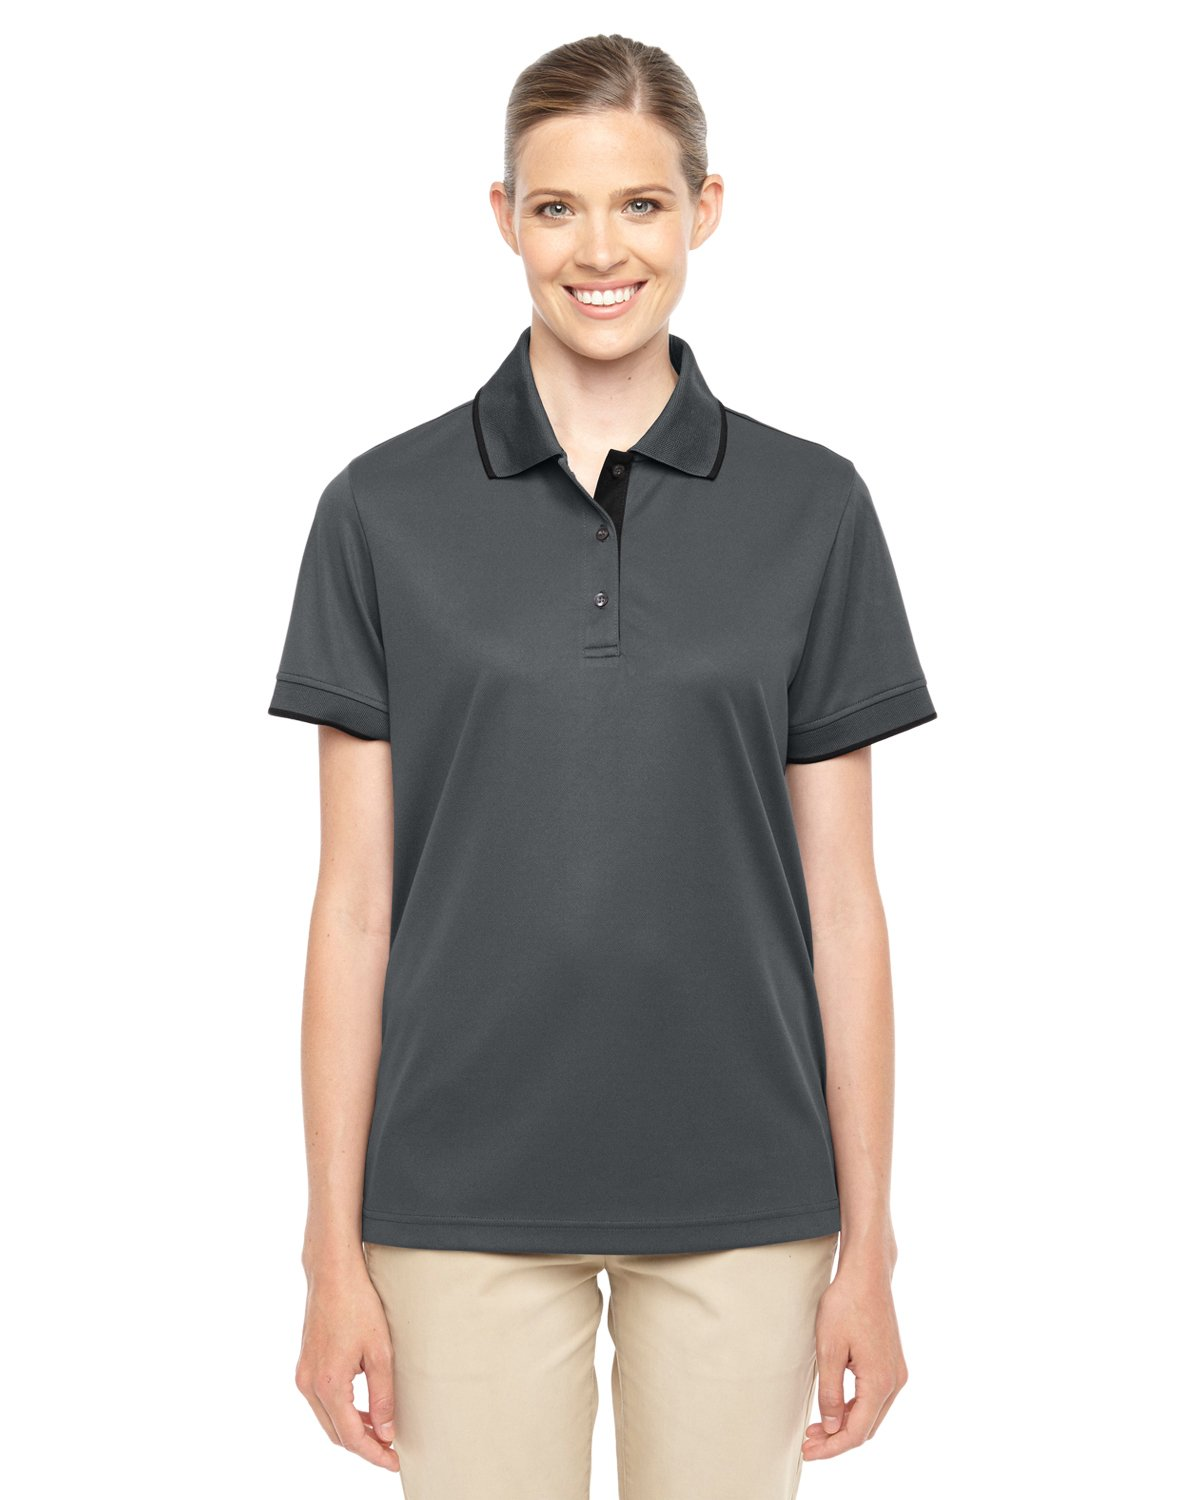 Ash City Core 365 Ladies Motive Performance Pique Polo with Tipped Collar (X-Small, Carbon/Black)